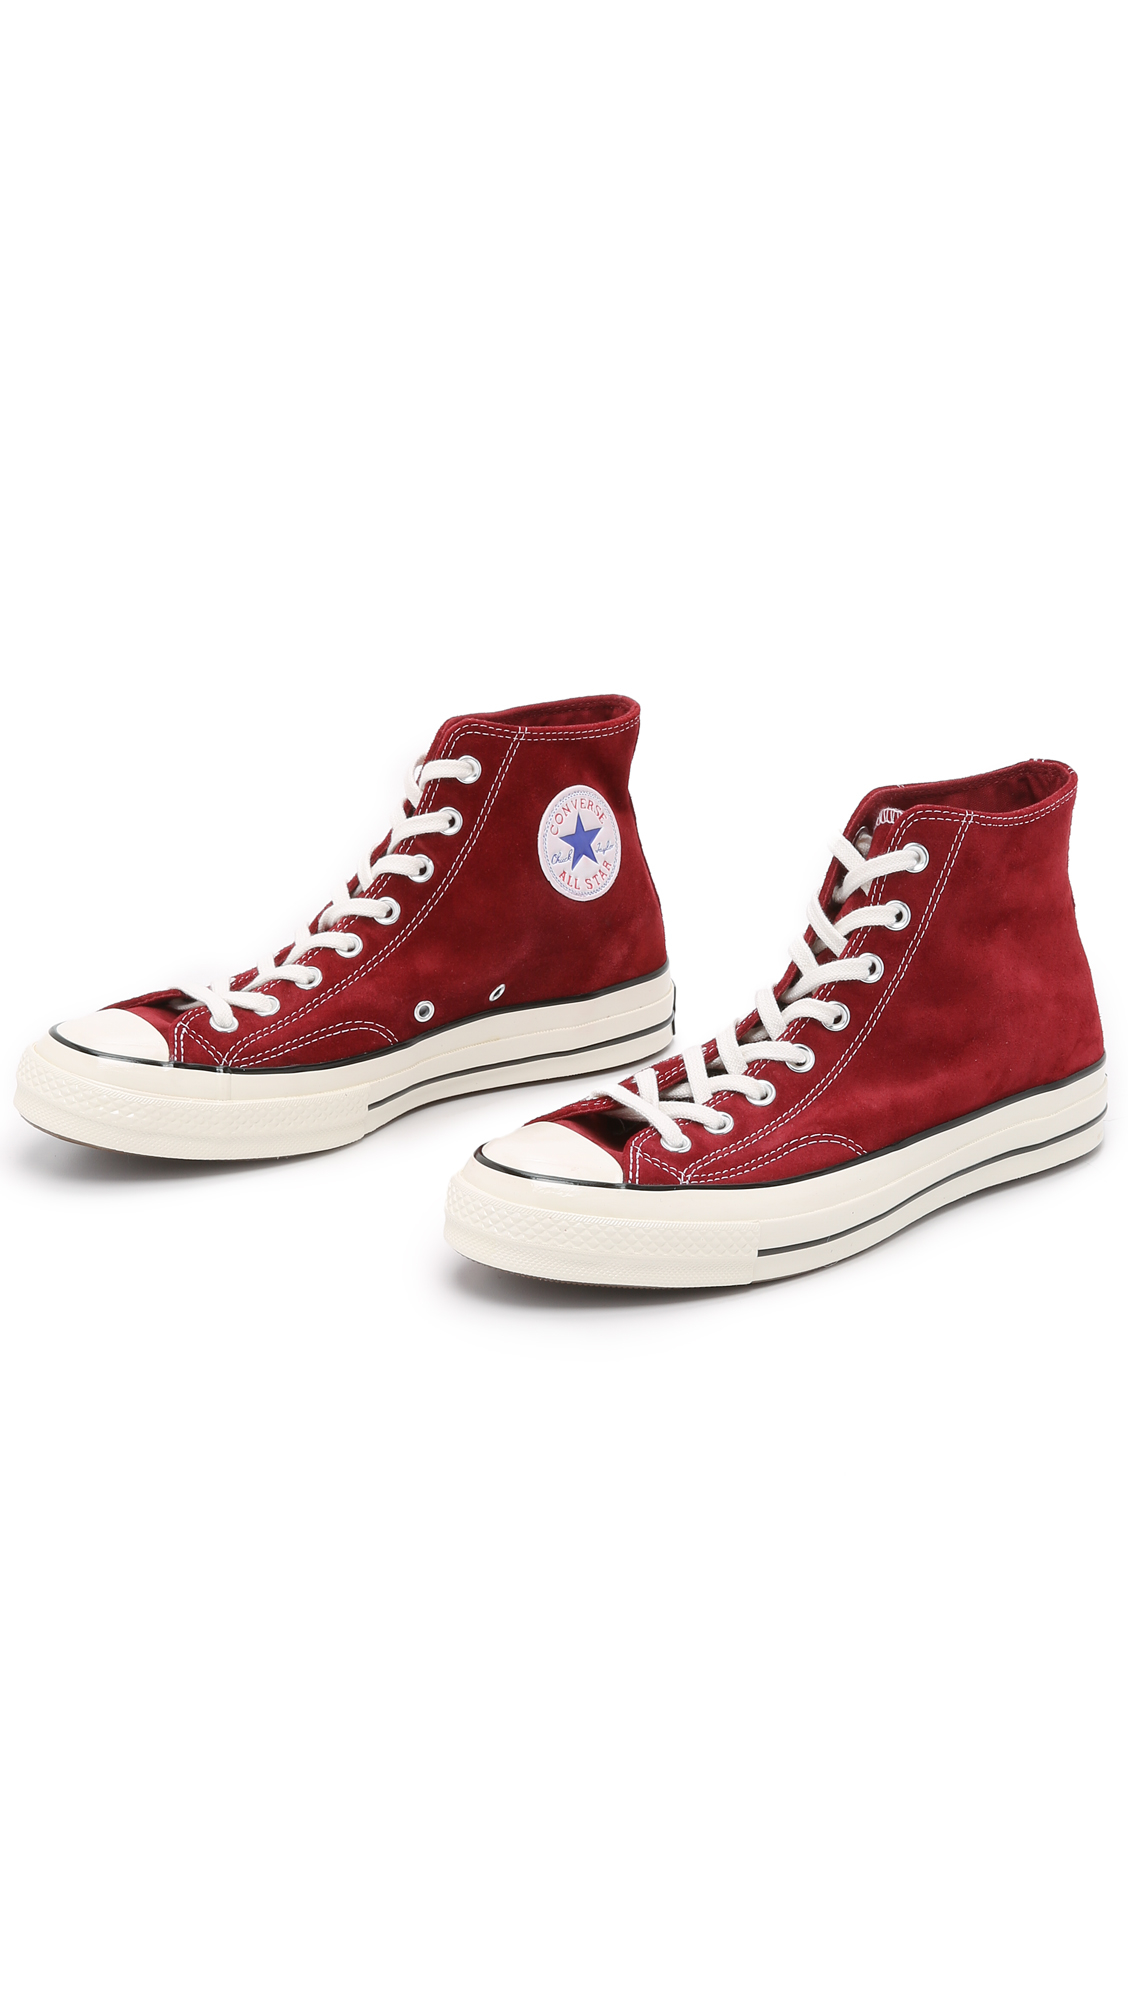 89613c7adb61 Lyst - Converse Chuck Taylor All Star  70s Suede High Top Sneakers ...